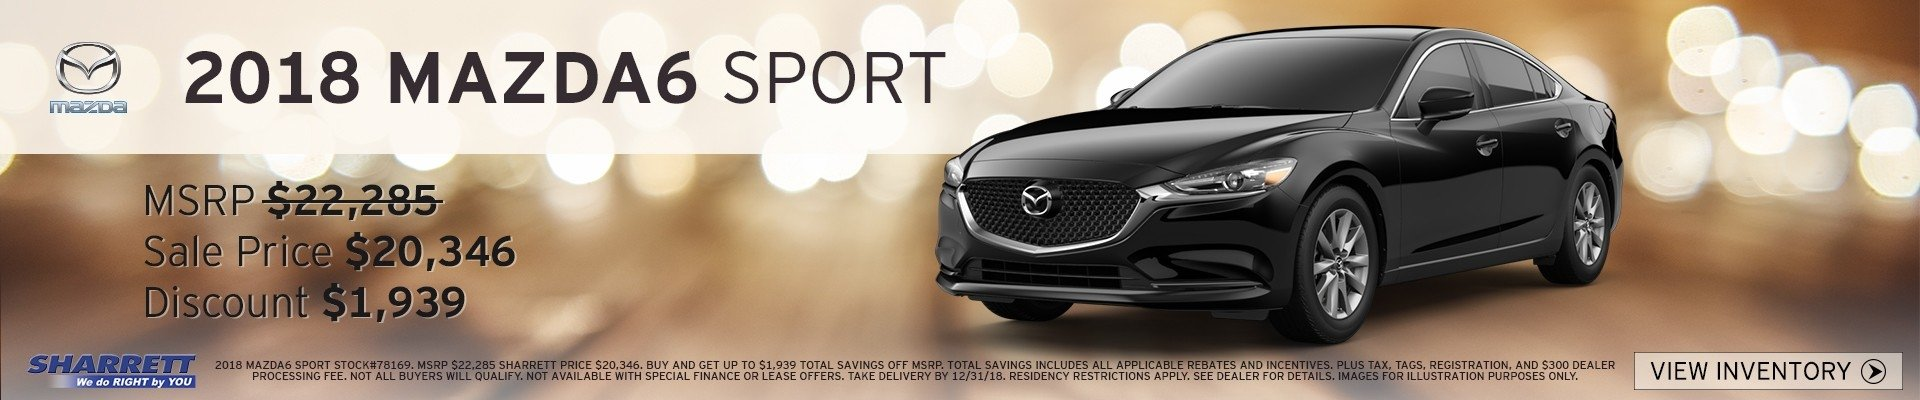 2018 Mazda6 Sport up to $1,939 off MSRP